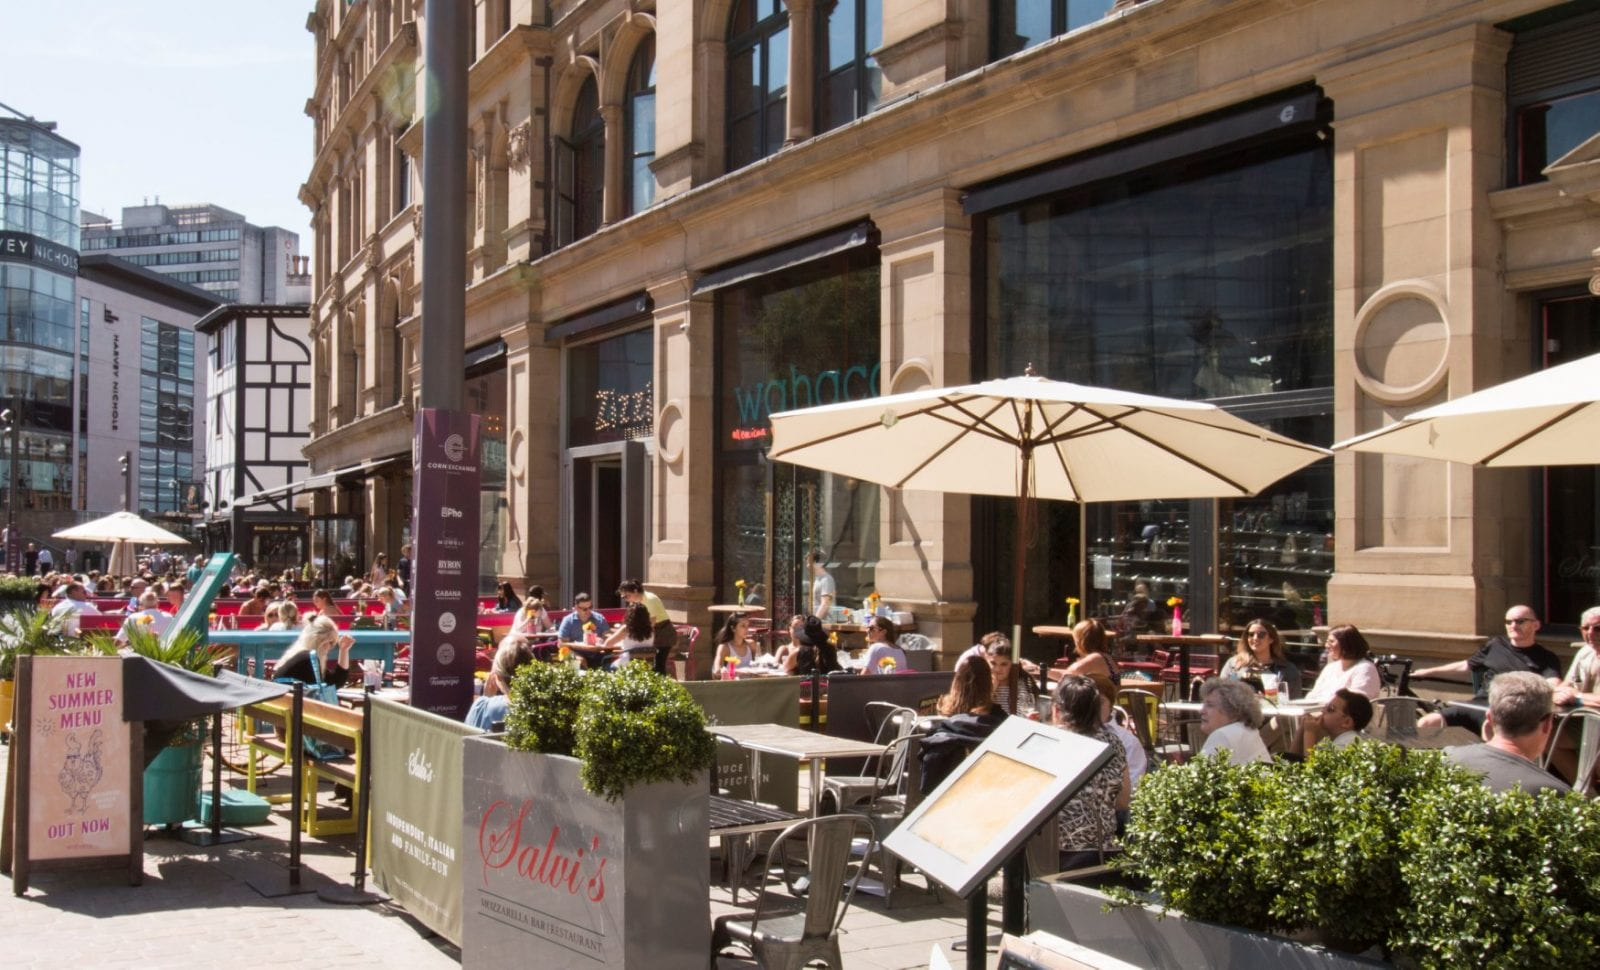 All the bars, cafes and restaurants in Manchester city centre doing walk-ins, The Manc